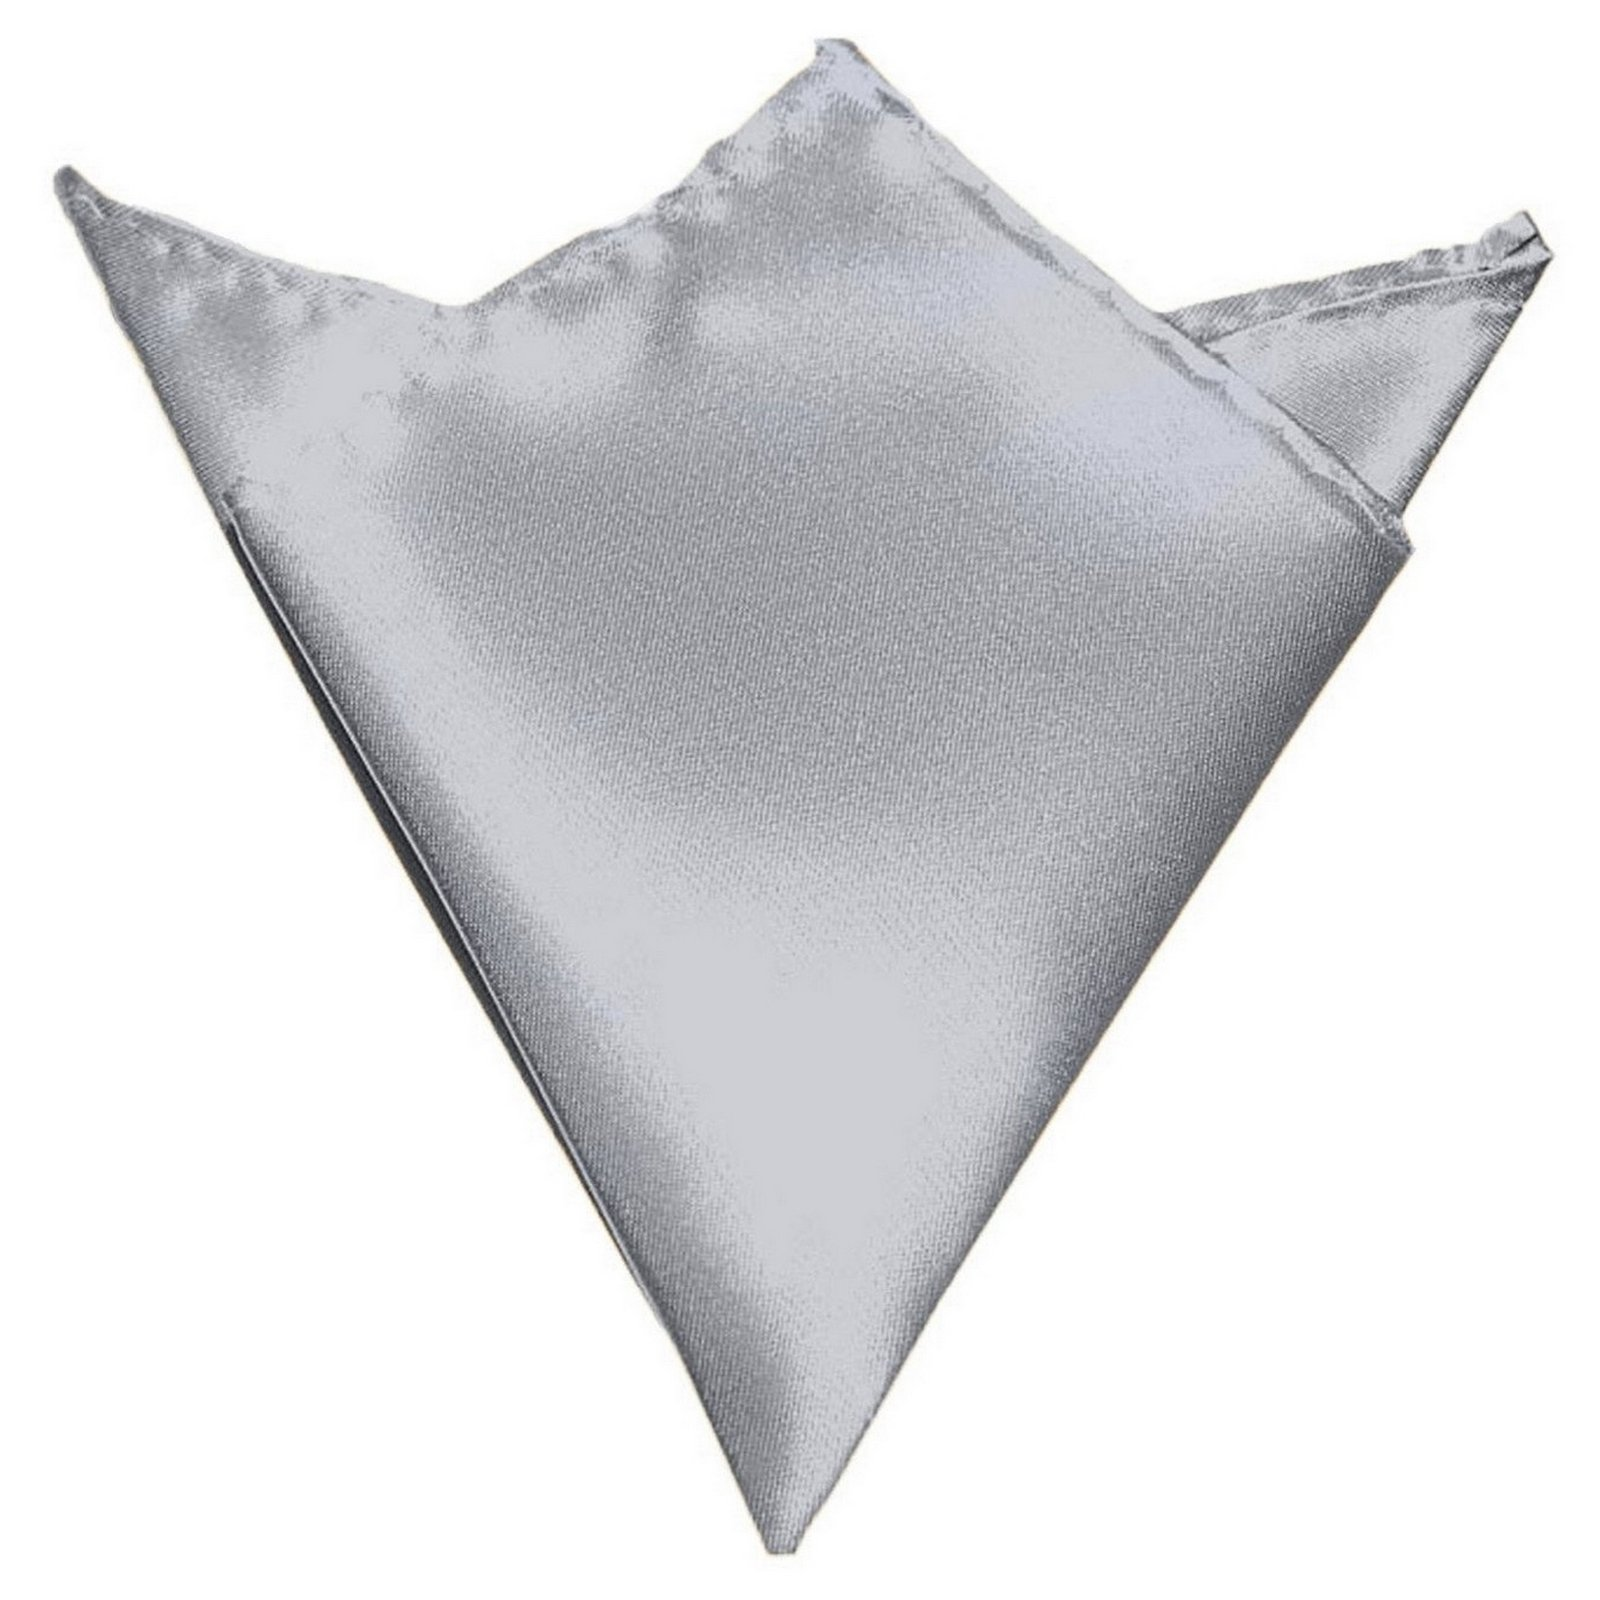 GASSANI Light Silver Gray Hanky Pocket Square Handkerchief Pocket Hanky by GASSANI (Image #1)